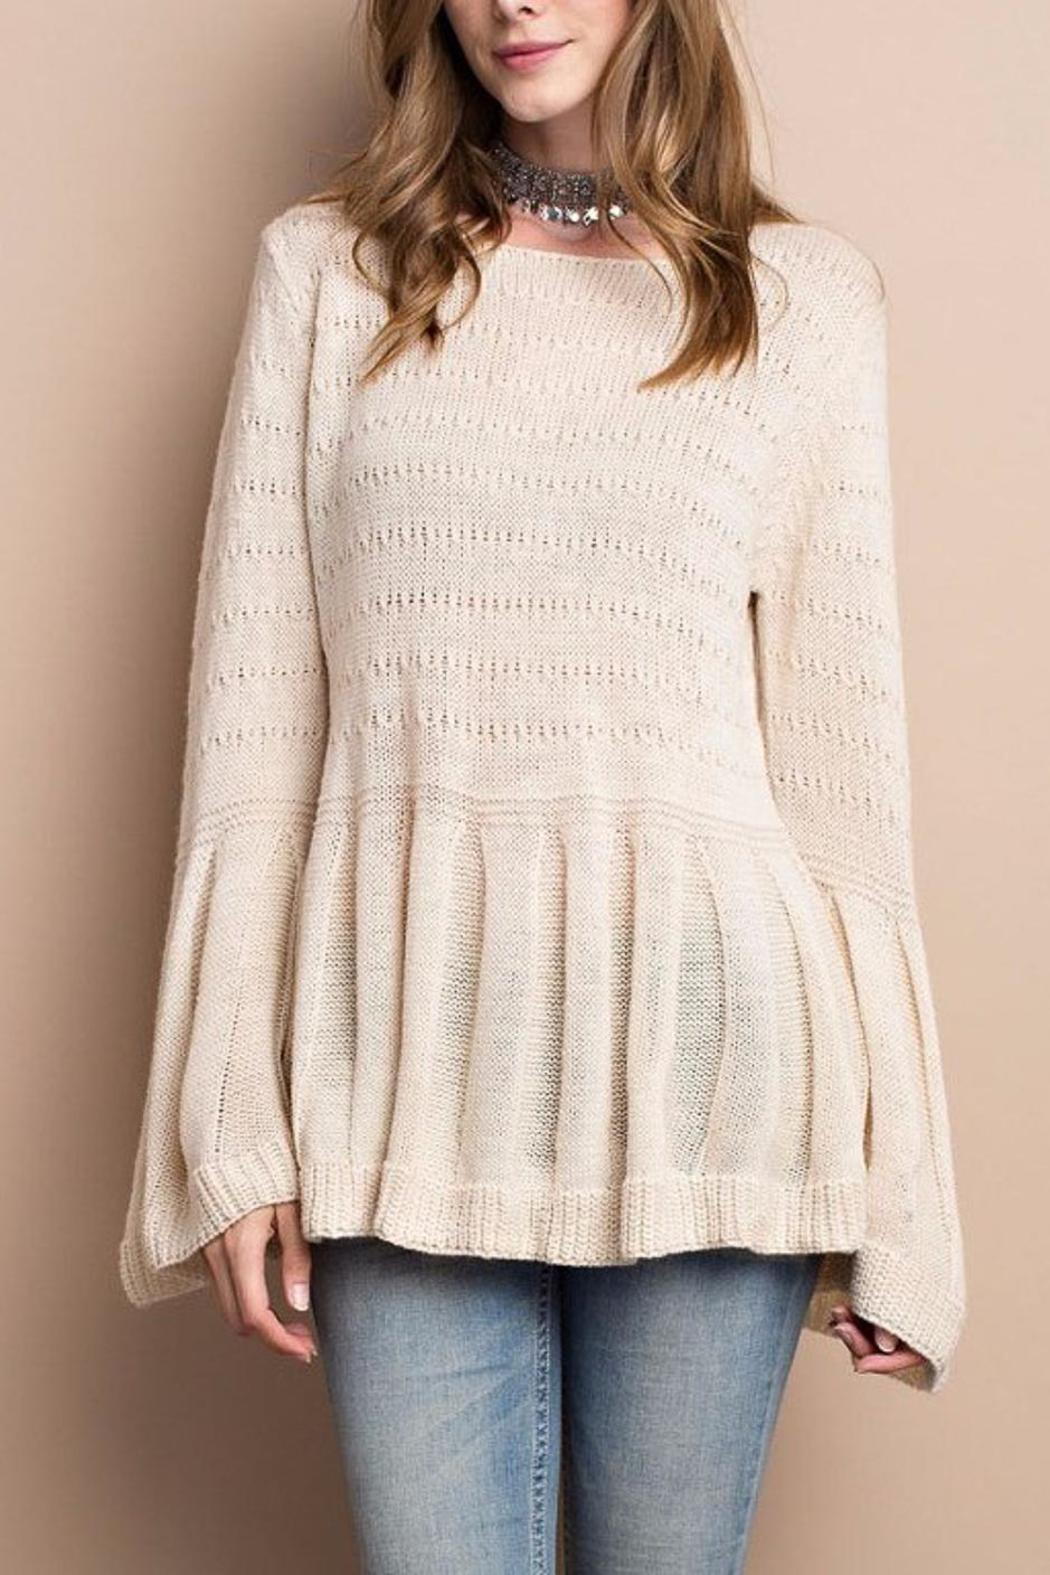 People Outfitter Keep Bell Sweater - Back Cropped Image